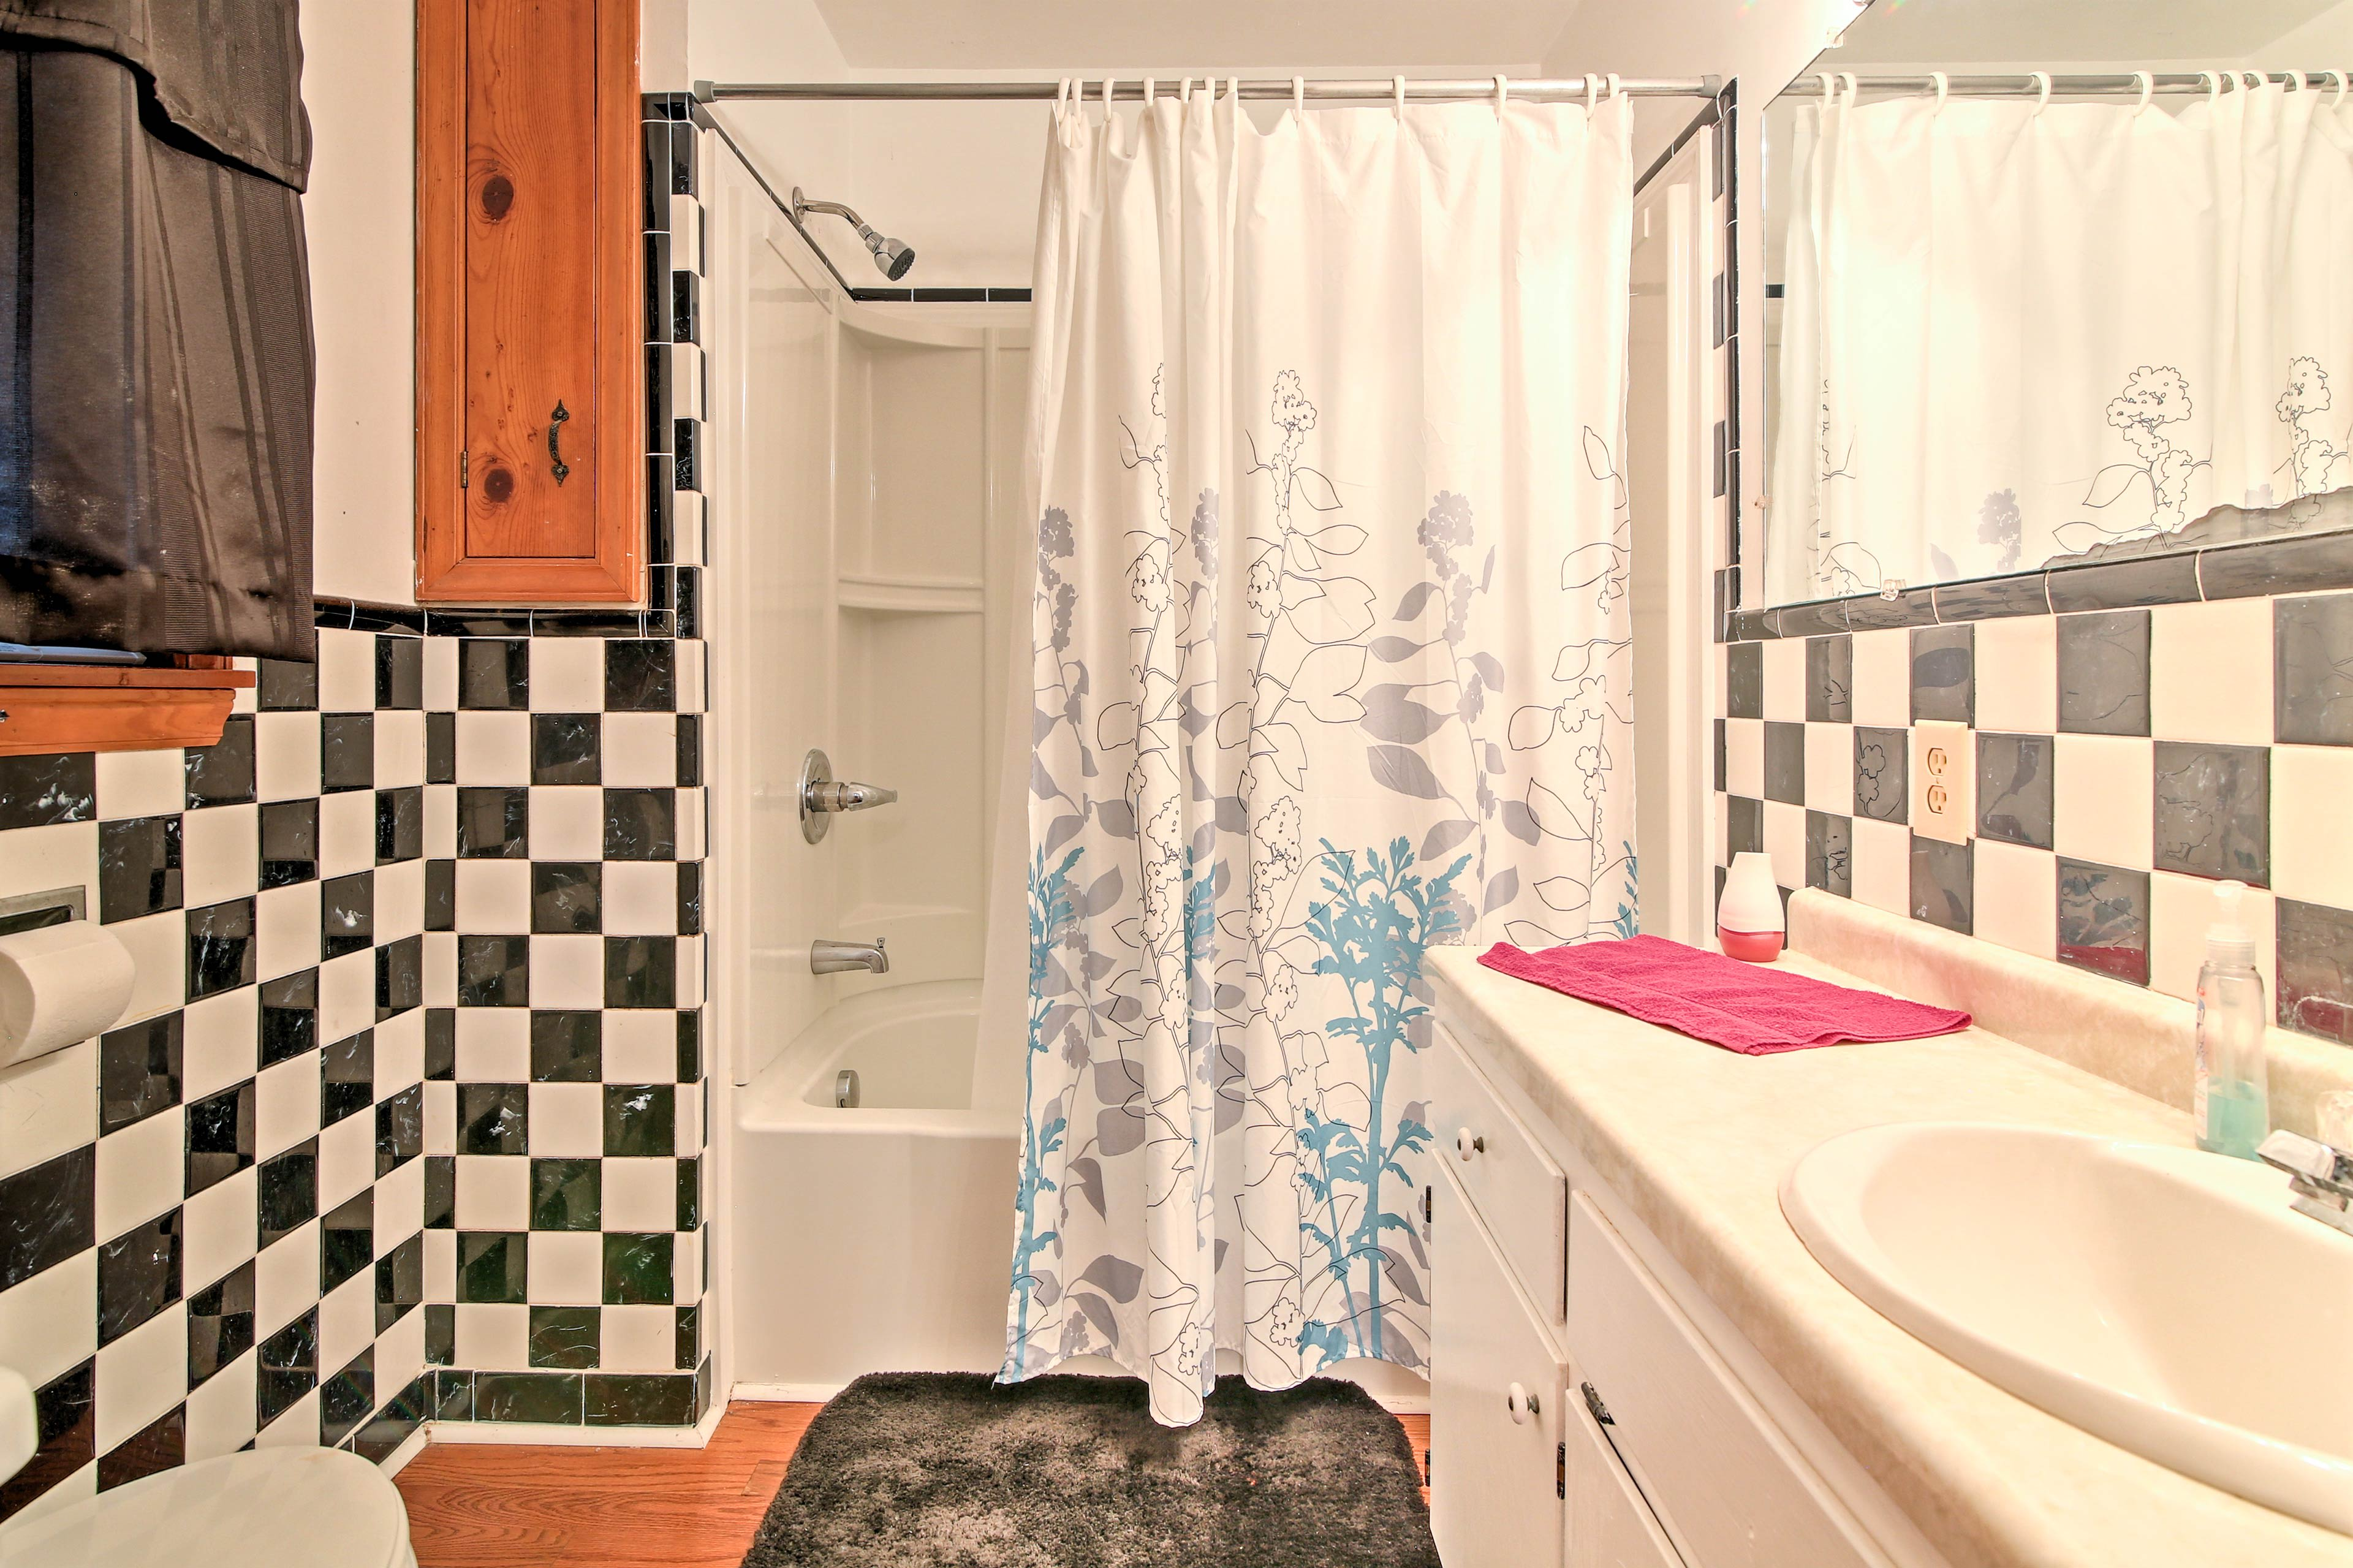 The second full bathroom is equipped with a shower/tub combo.